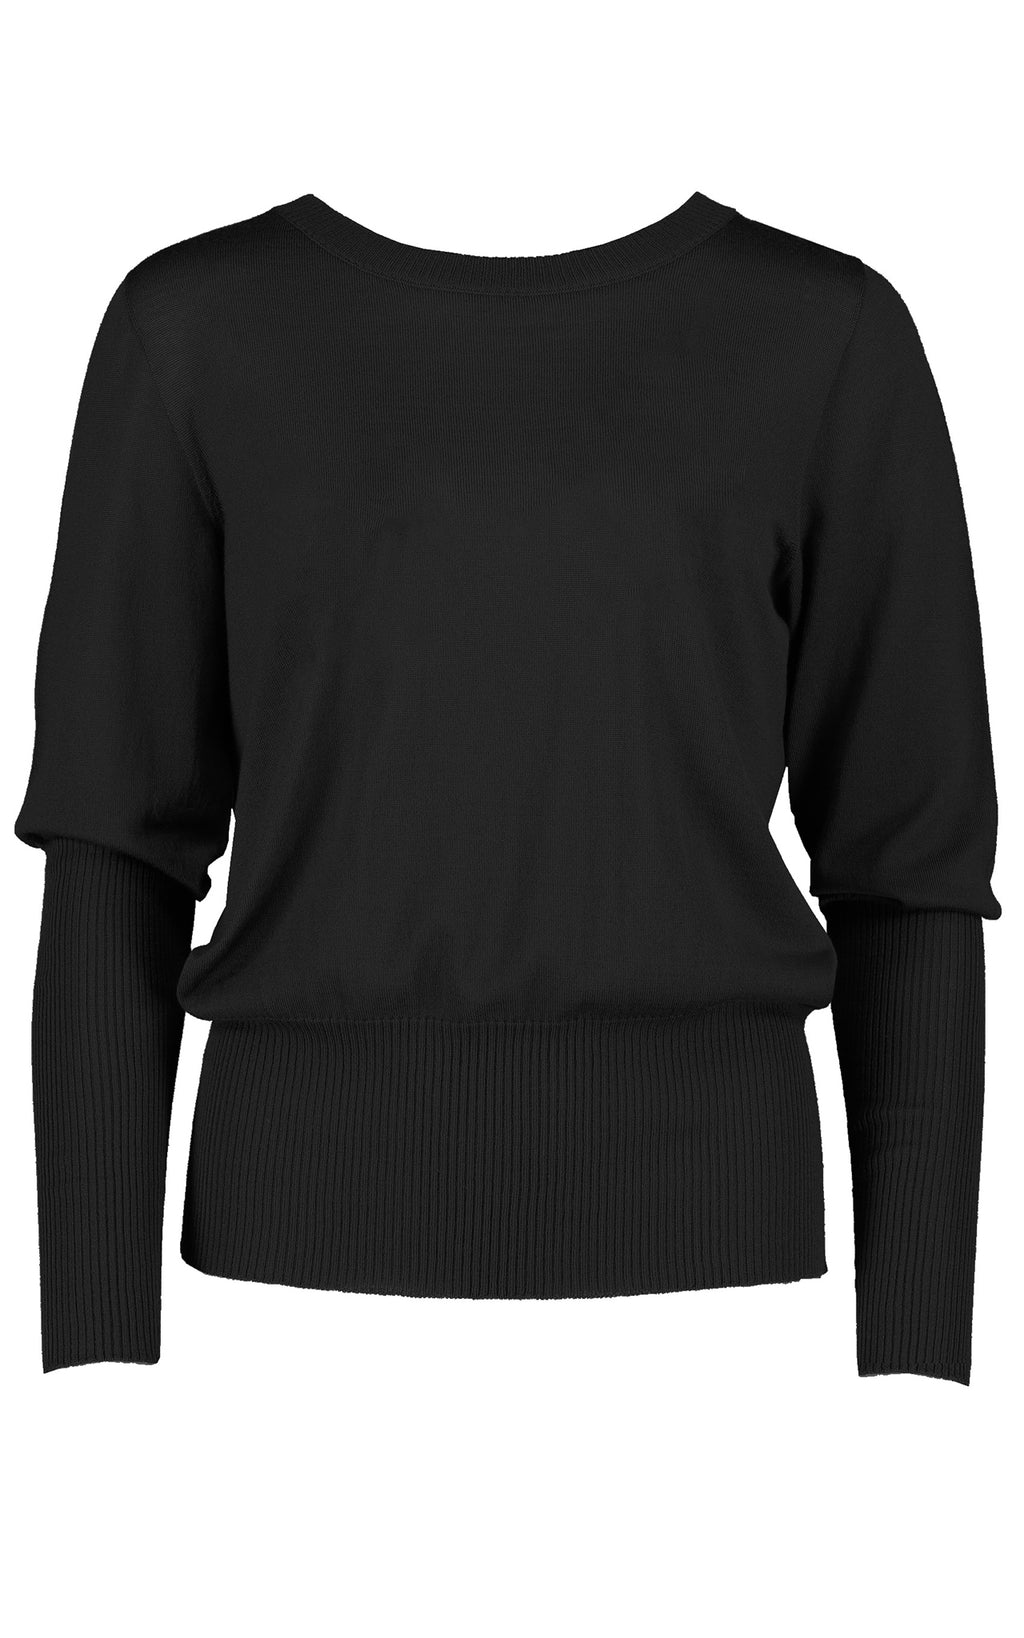 STANDARD ISSUE - SI1752 LONG RIB SWEATER BLACK